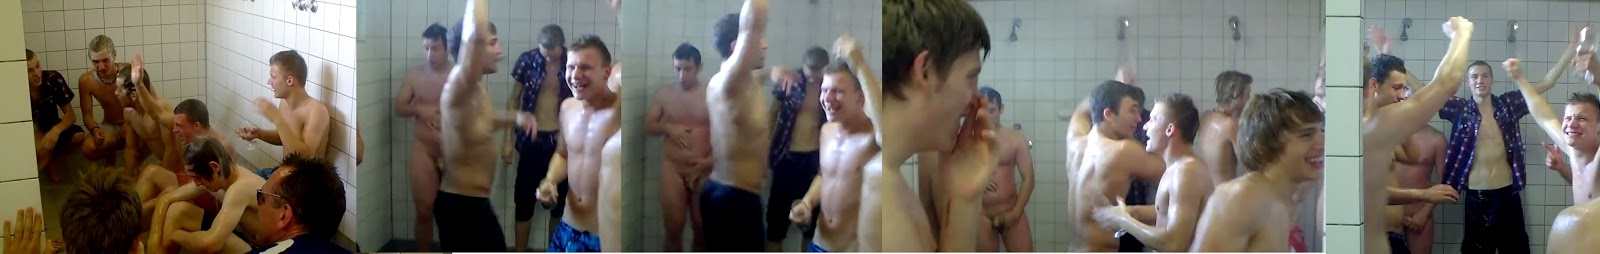 nude boys in locker room